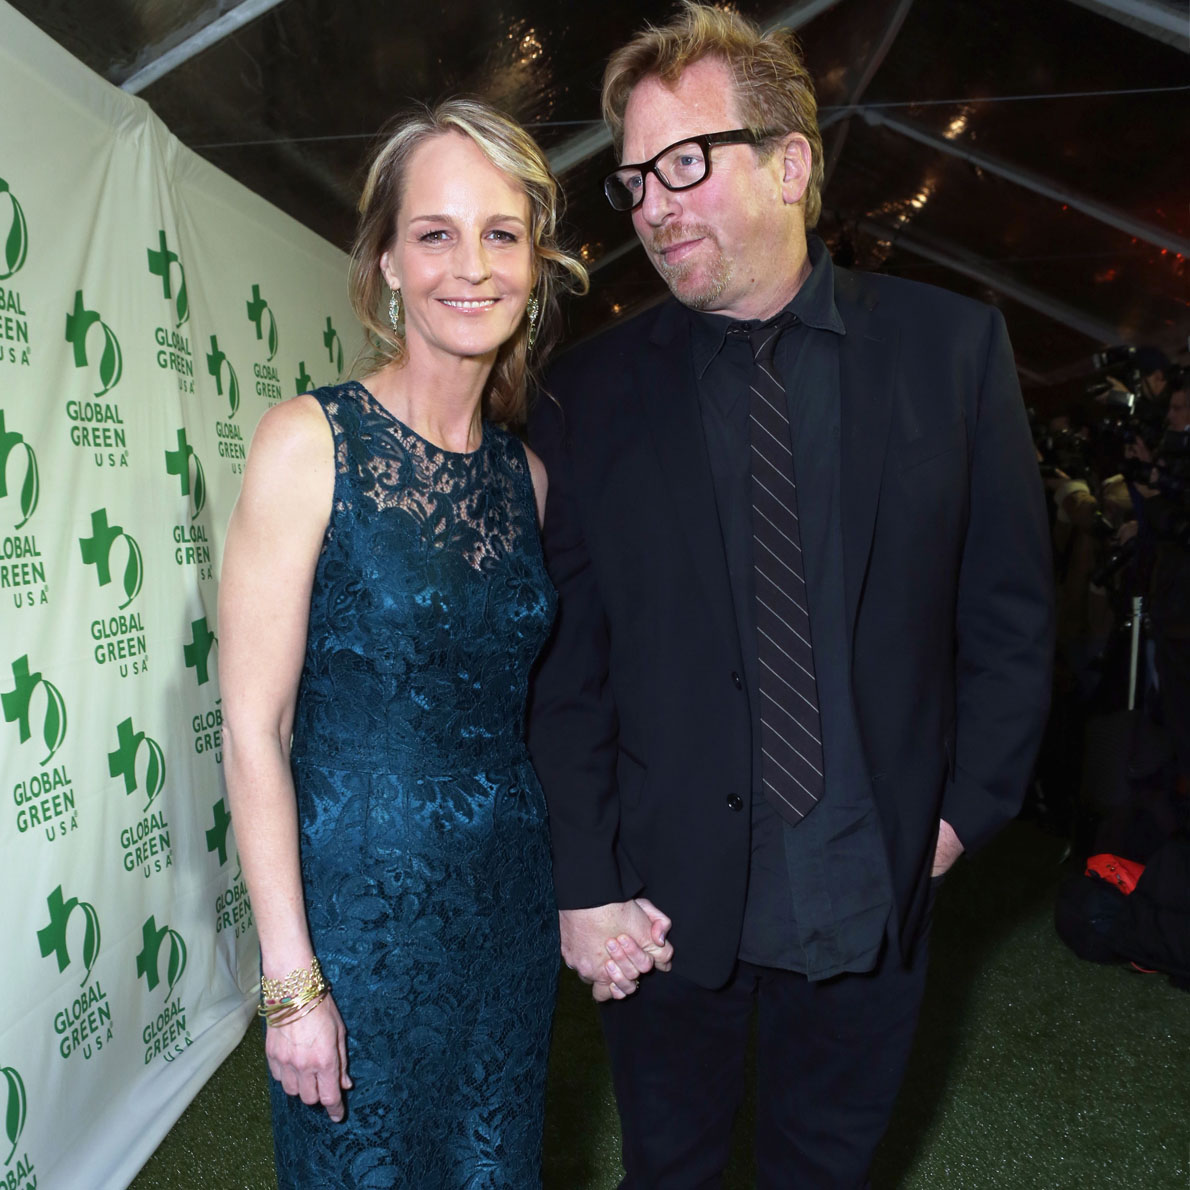 Helen Hunt and Matthew Carnahan break up together at an event